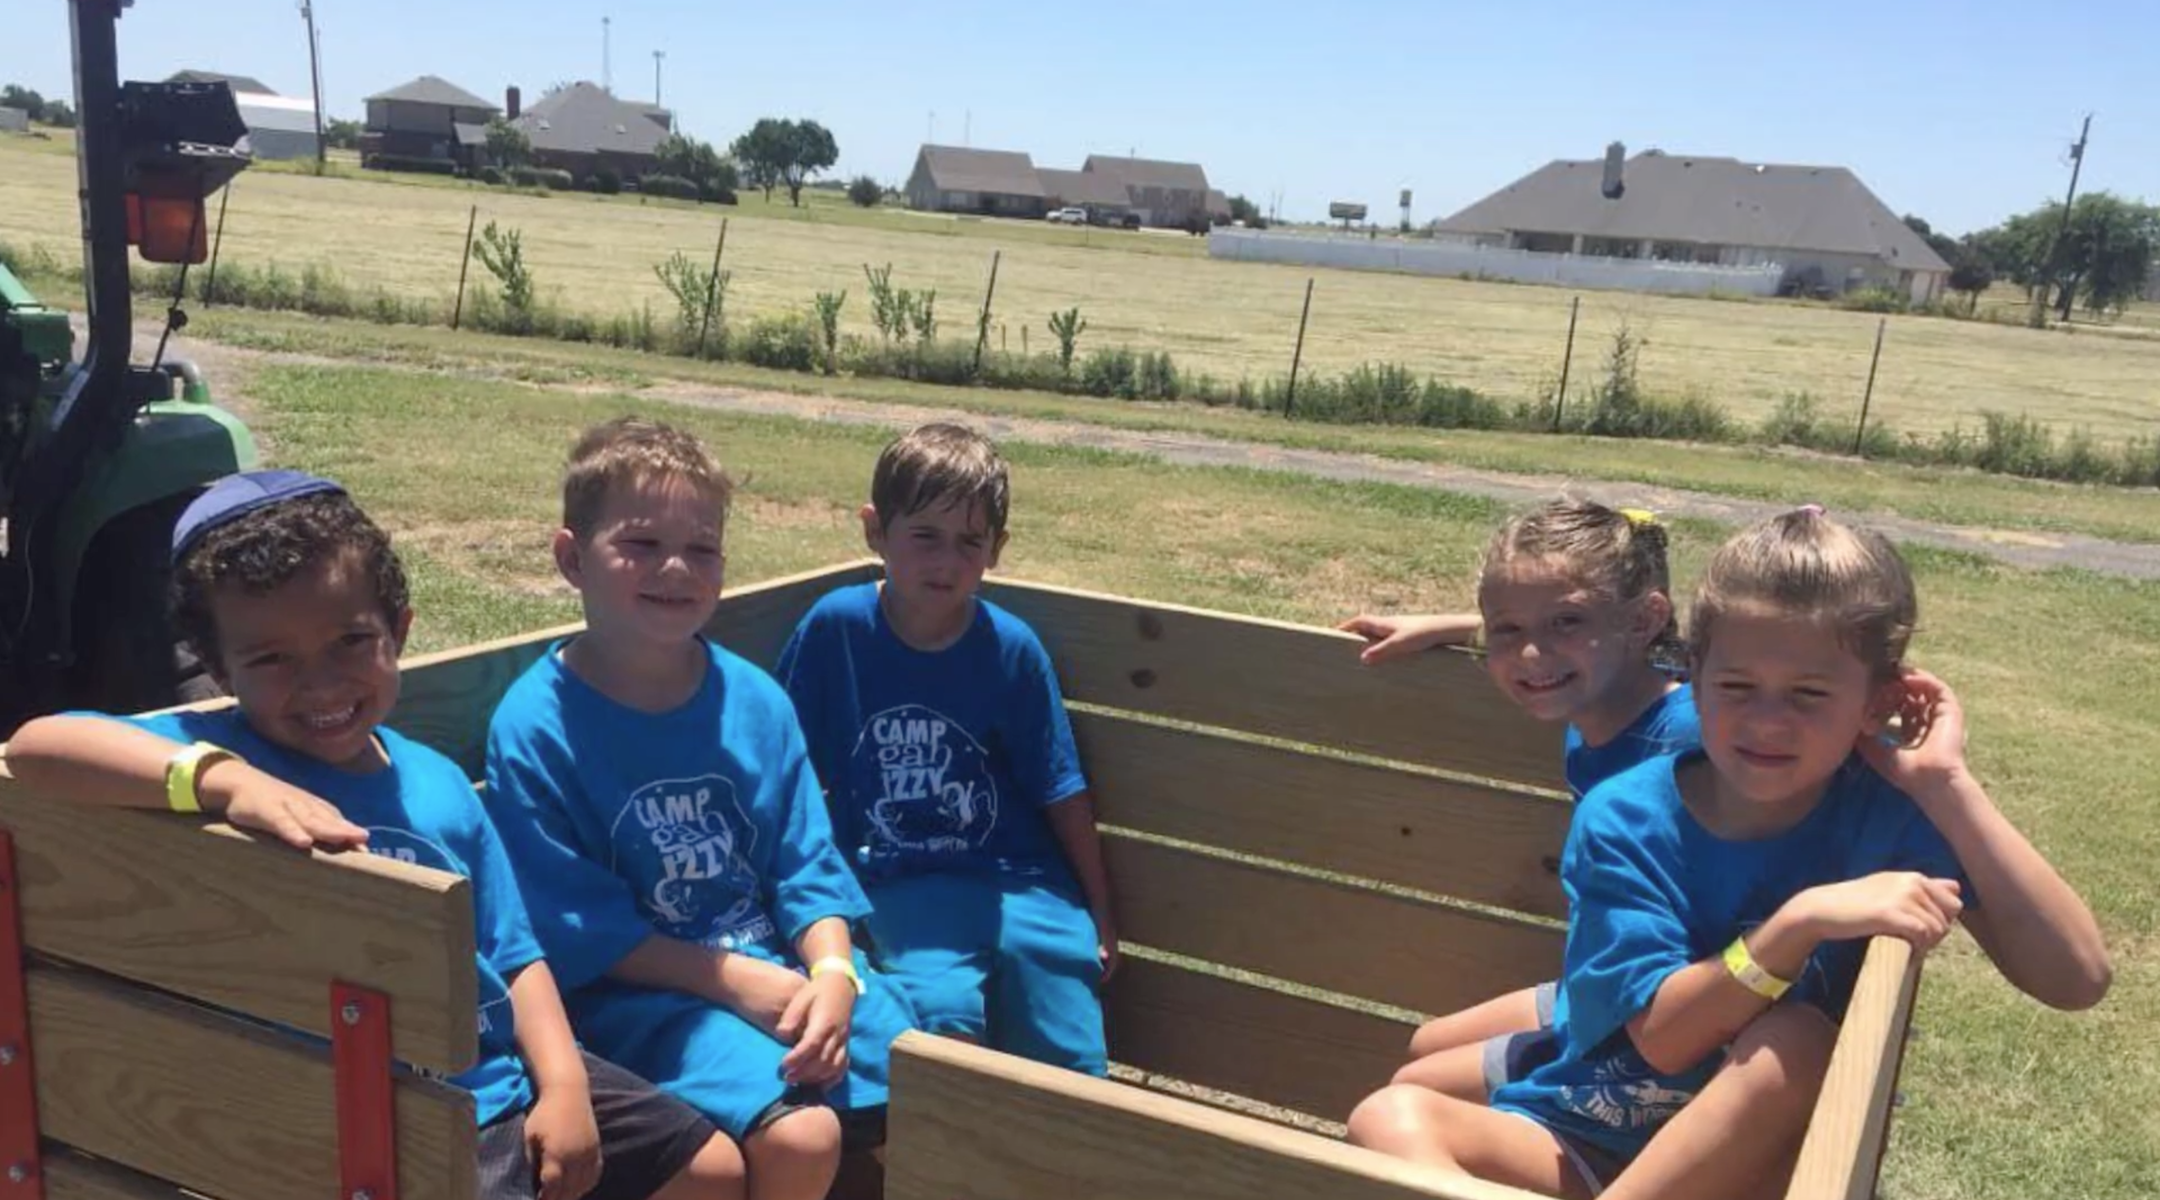 Jewish day camp in Texas closes following COVID-19 outbreak